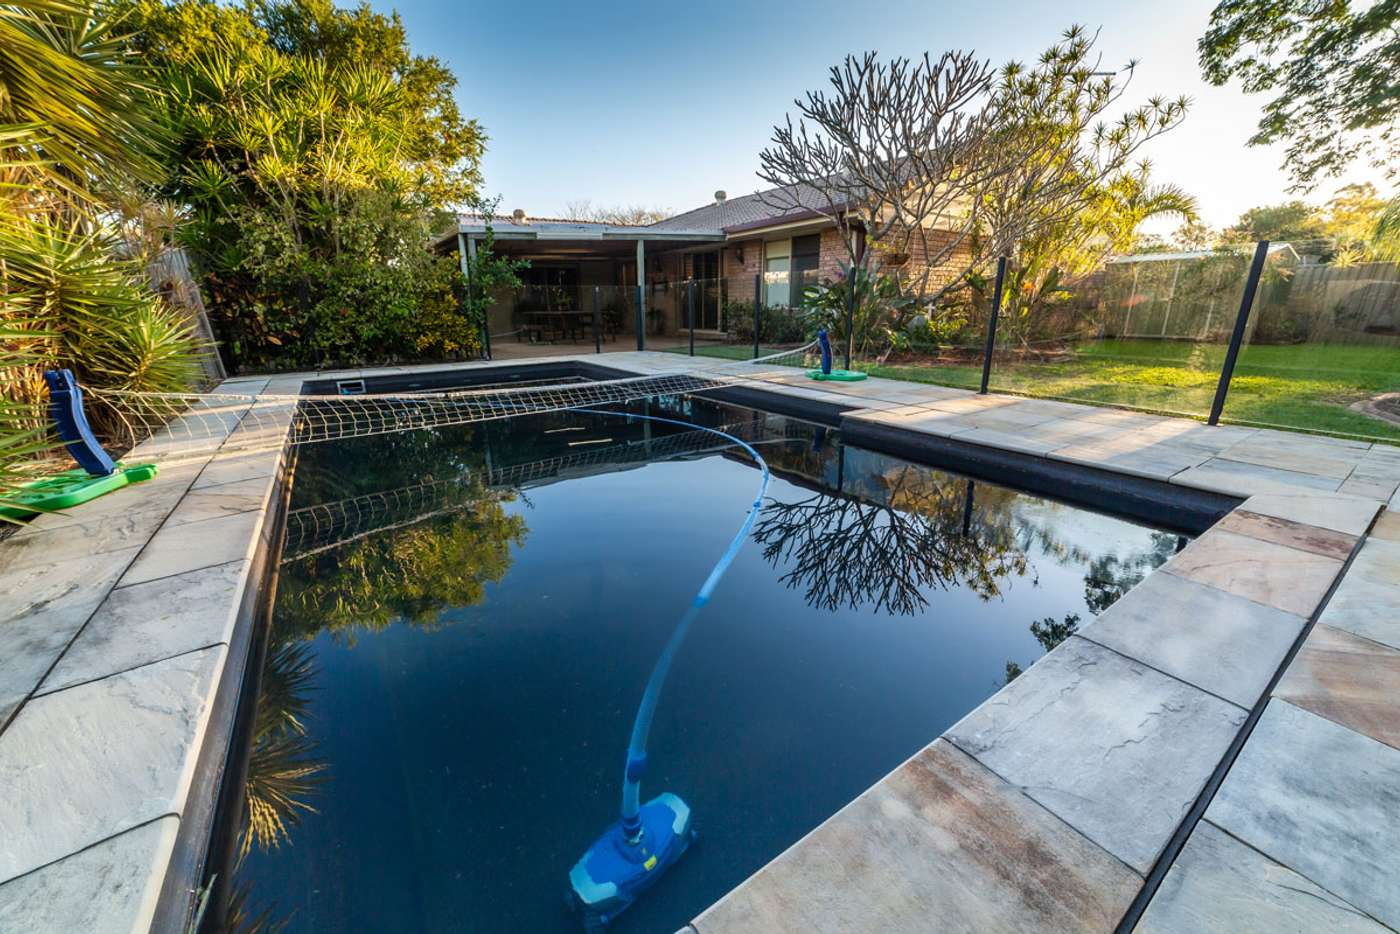 Main view of Homely house listing, 62 Edenlea Drive, Meadowbrook QLD 4131